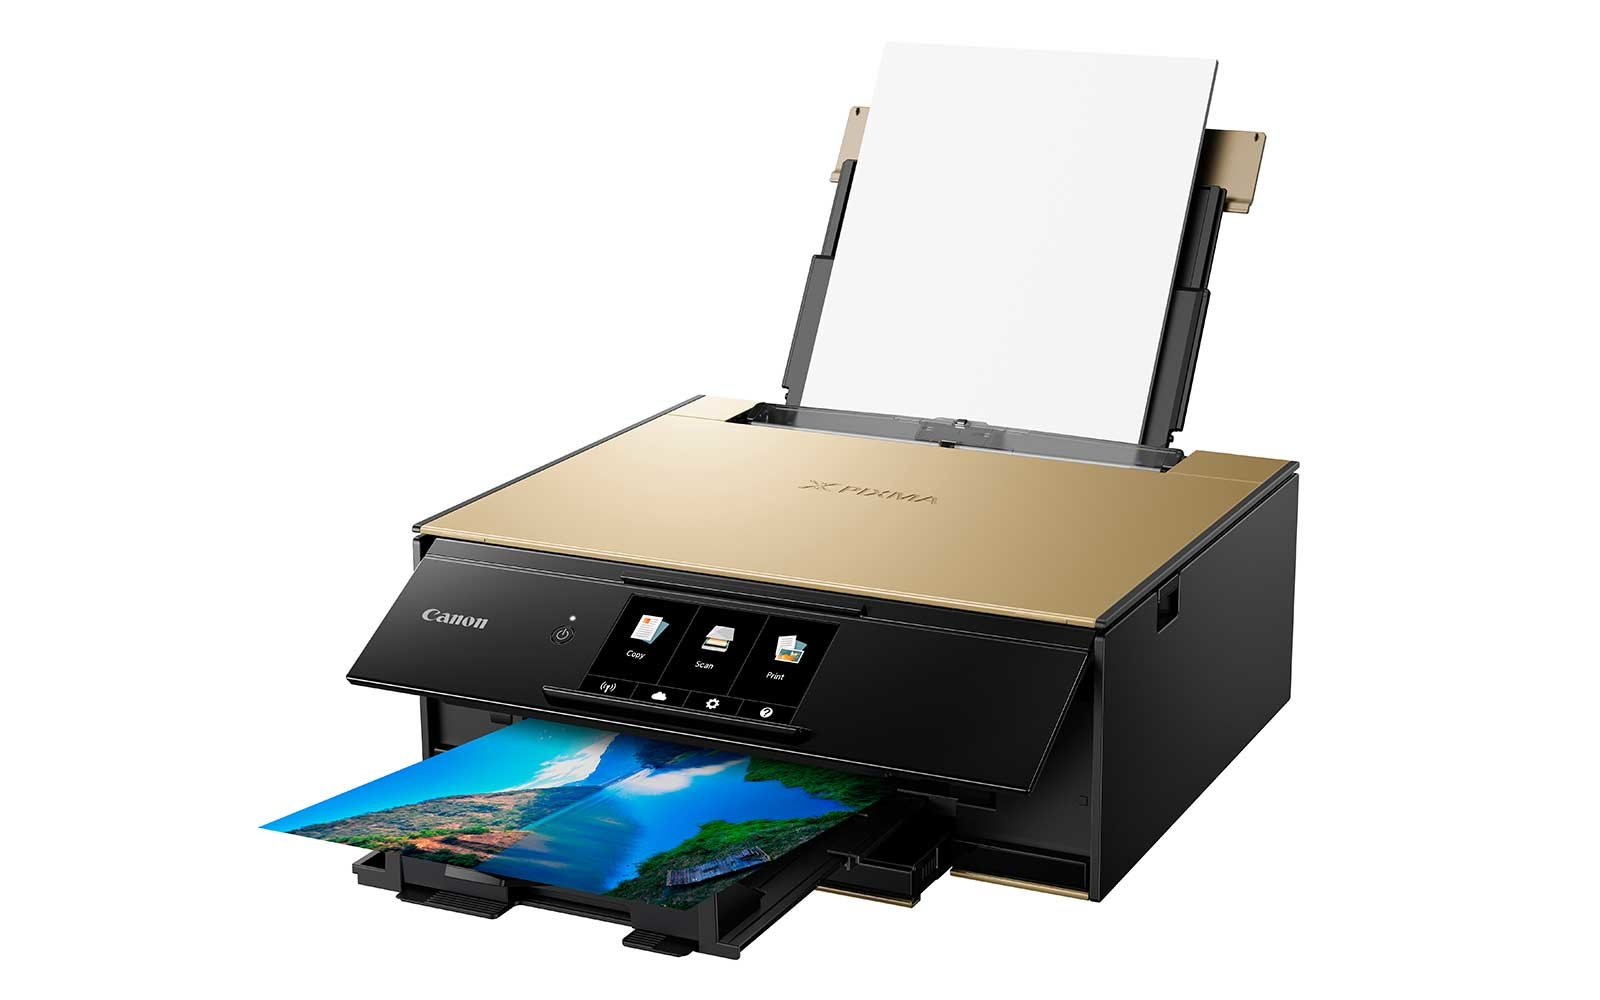 Canon Gold Pixma Photo Printer